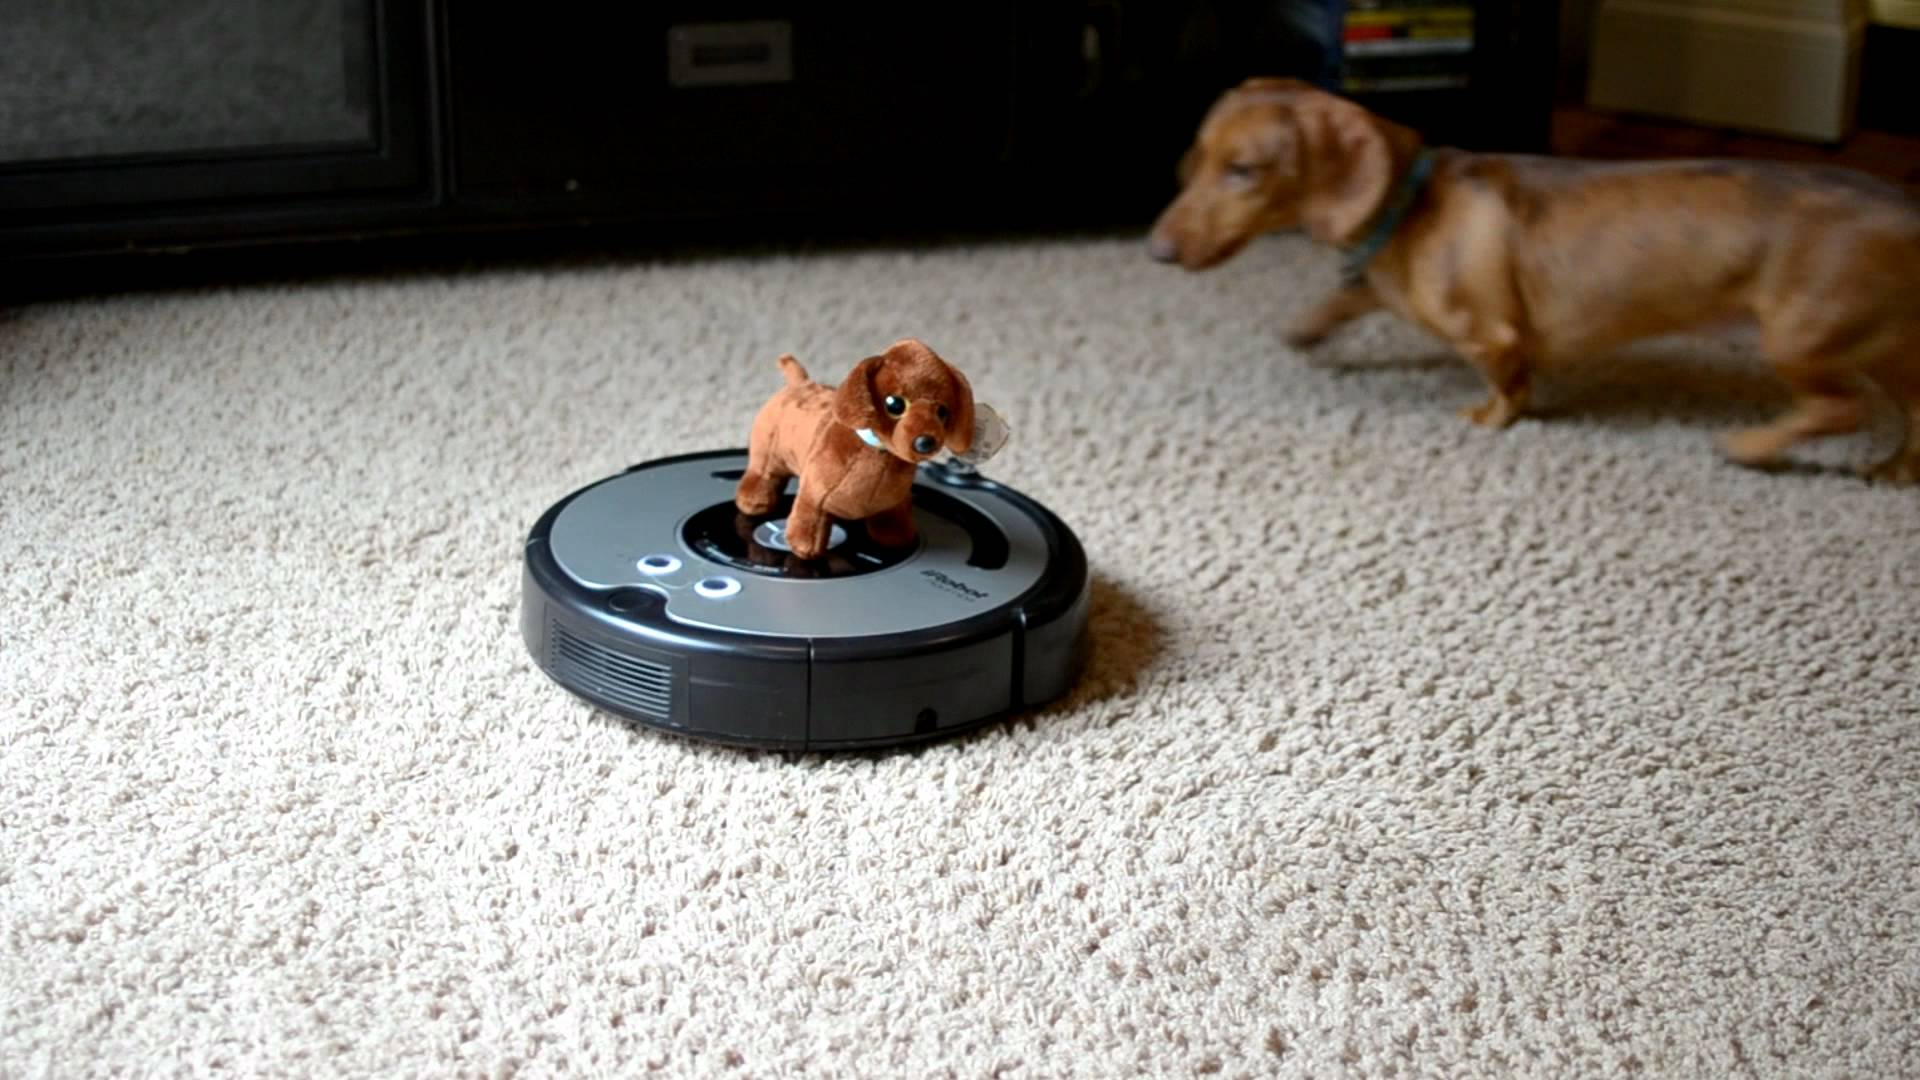 Dachshund And A Roomba Robot In One Room Is All The Fun